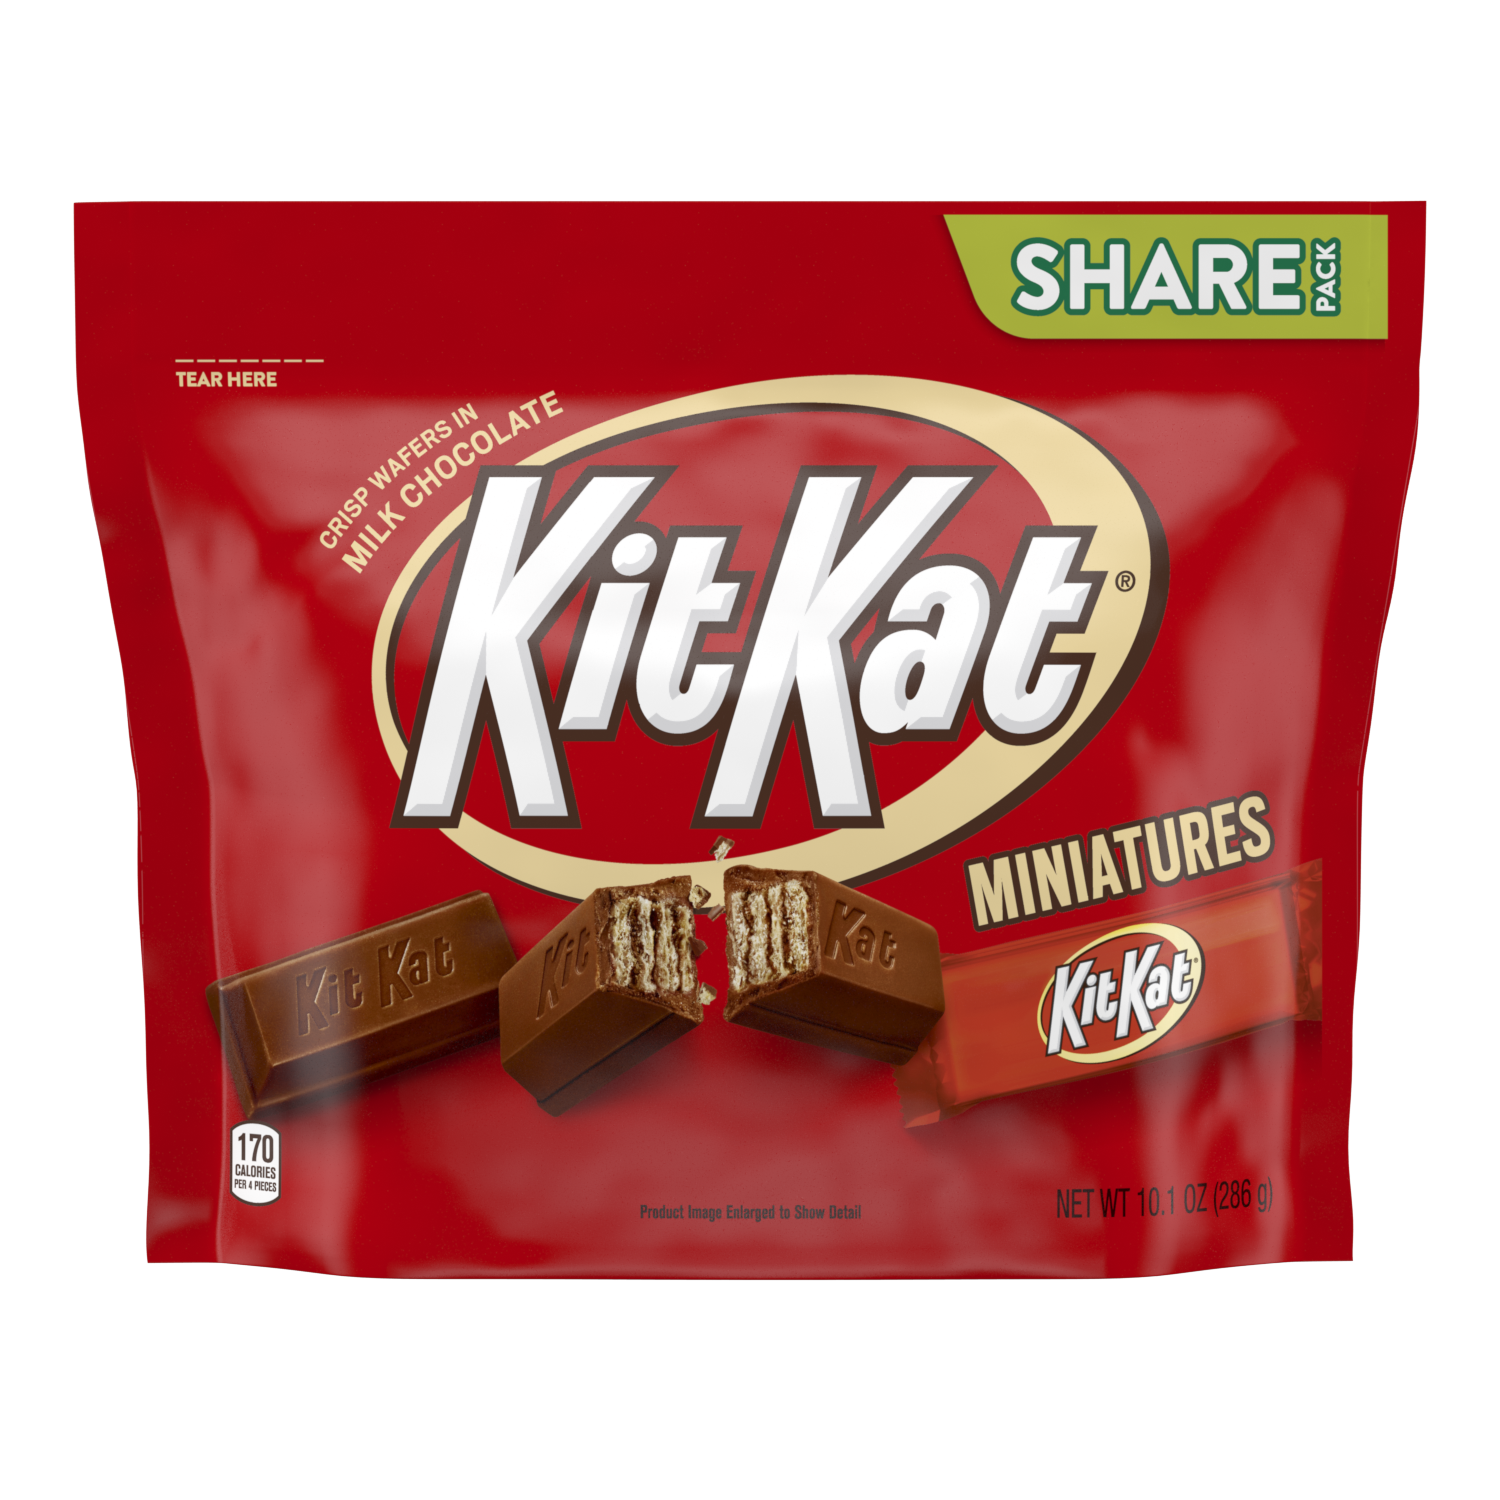 KIT KAT® Miniatures Milk Chocolate Candy Bars, 10.1 oz pack - Front of Package